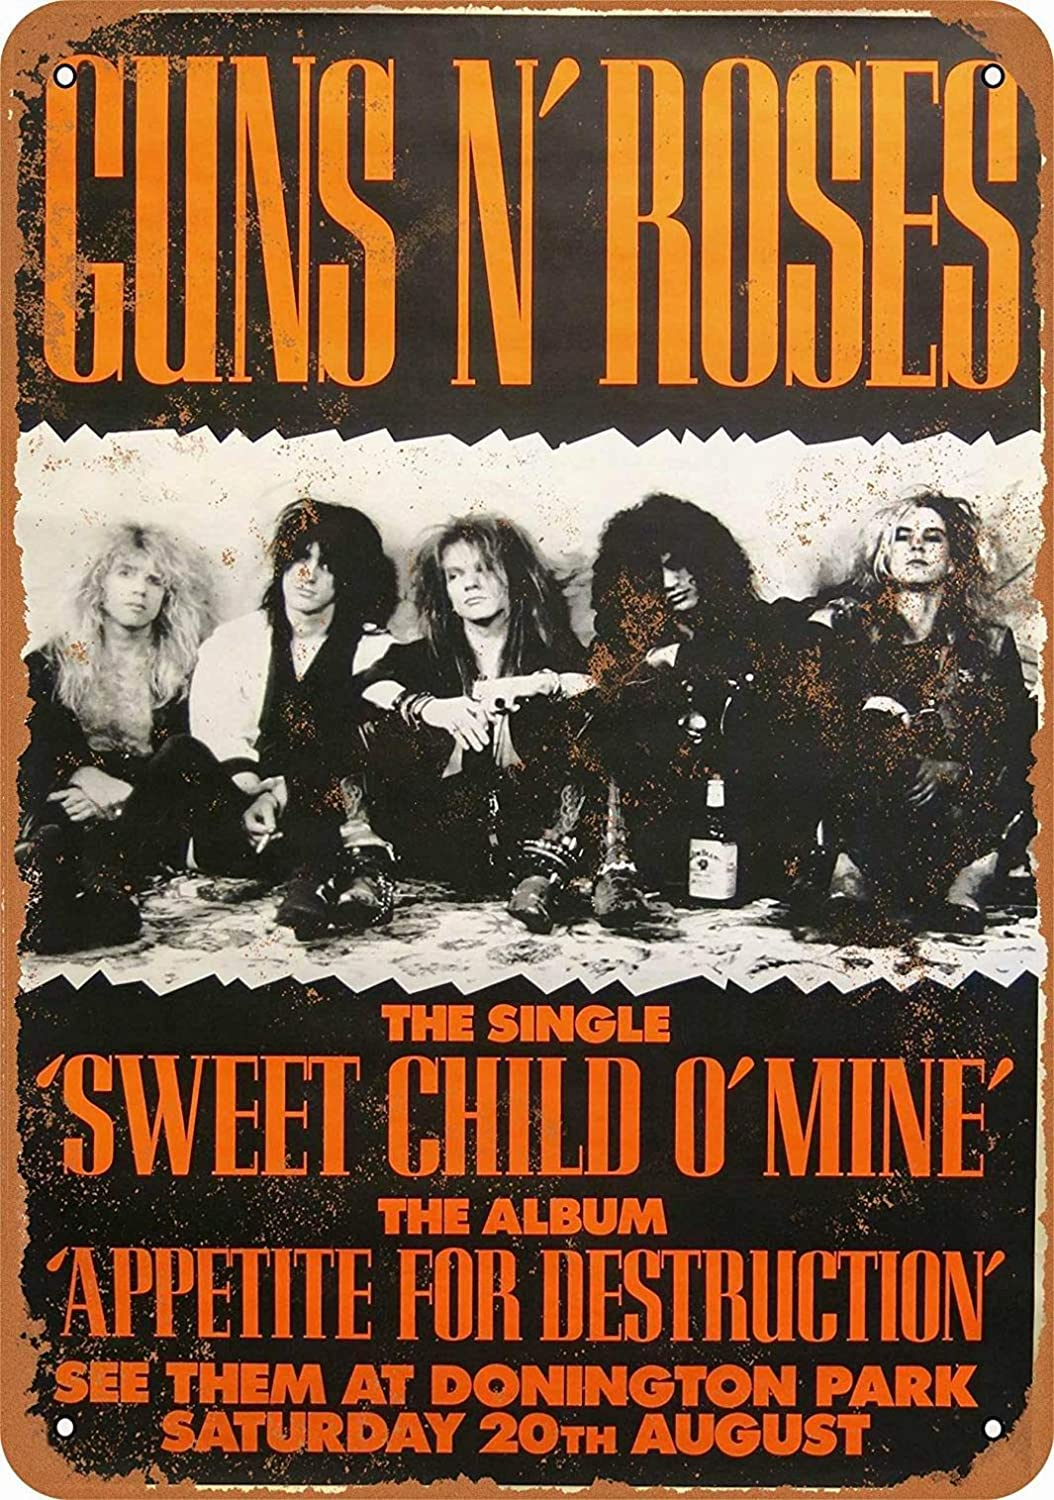 LoMall 8 x 12 Metal Sign - Guns 'N Roses at Donington Park - Vintage Wall Decor Art